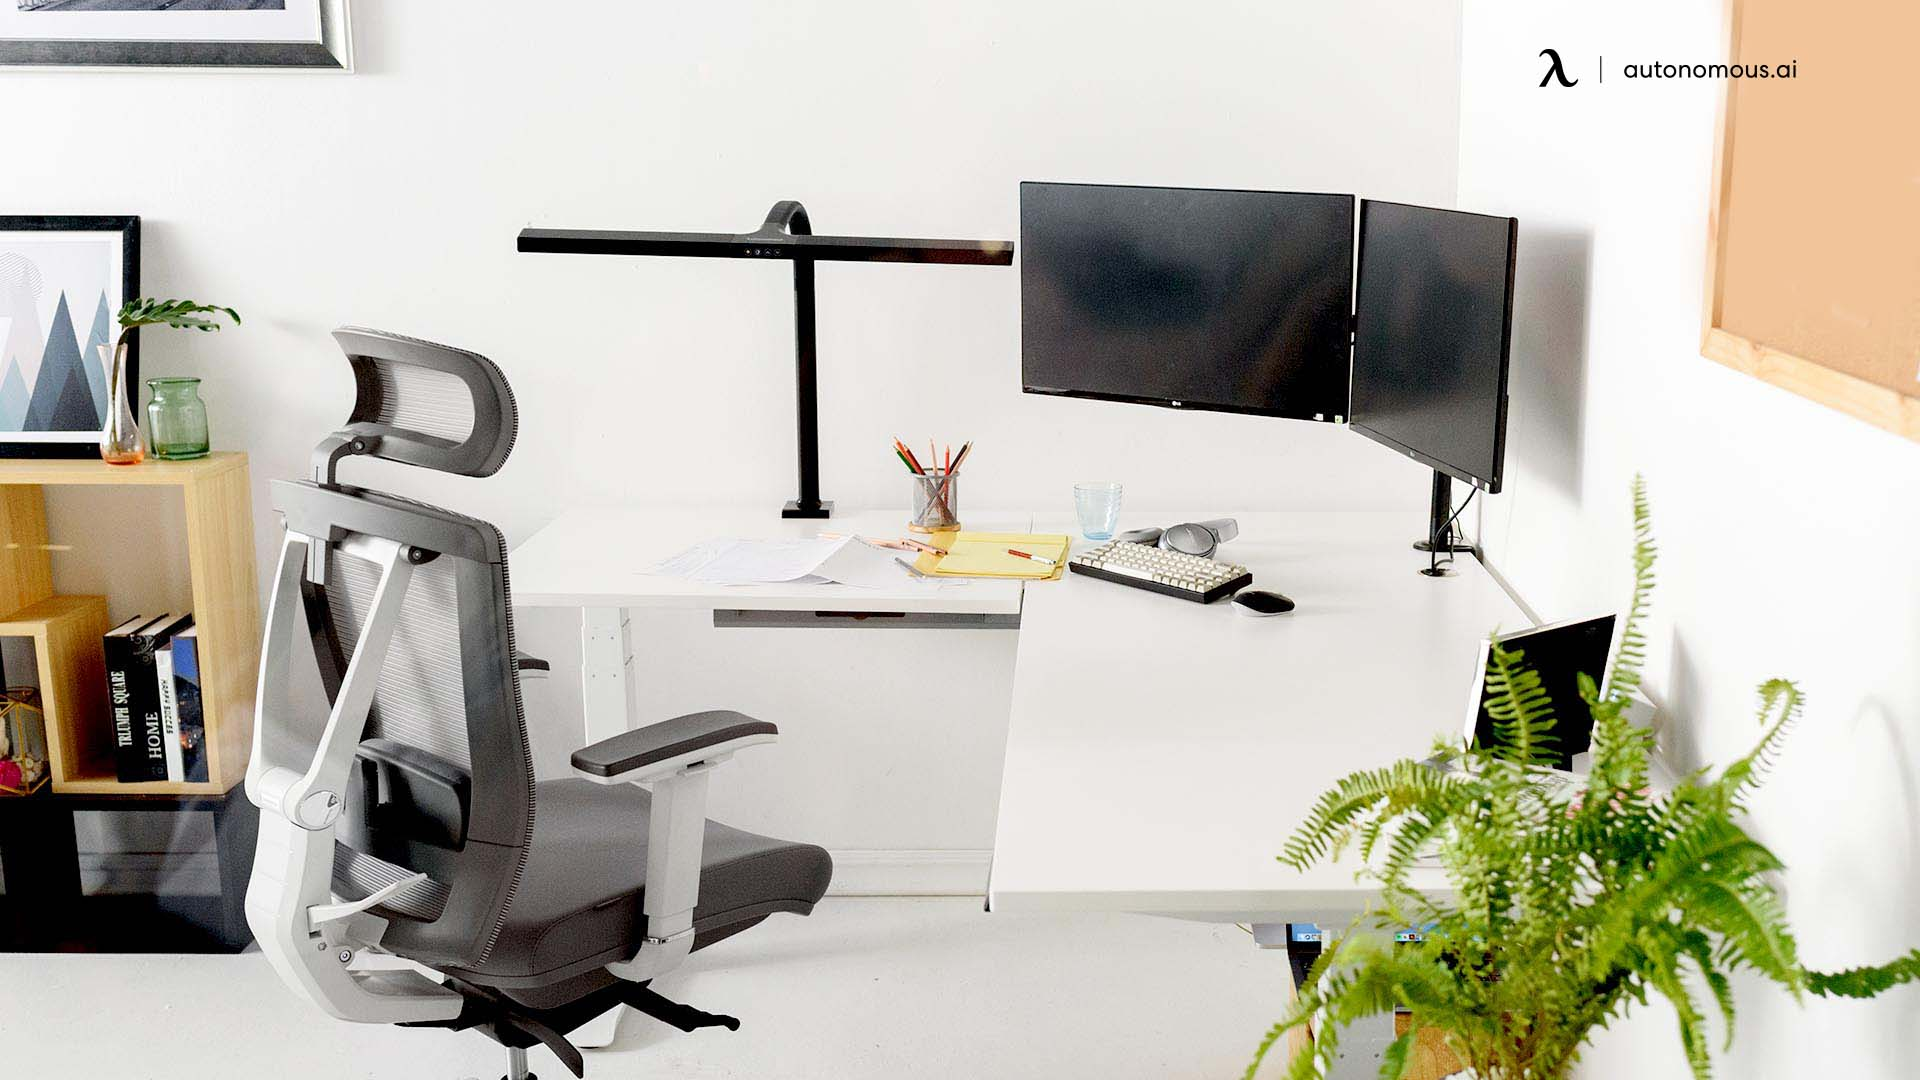 Place a Slender Desk Along the Wall